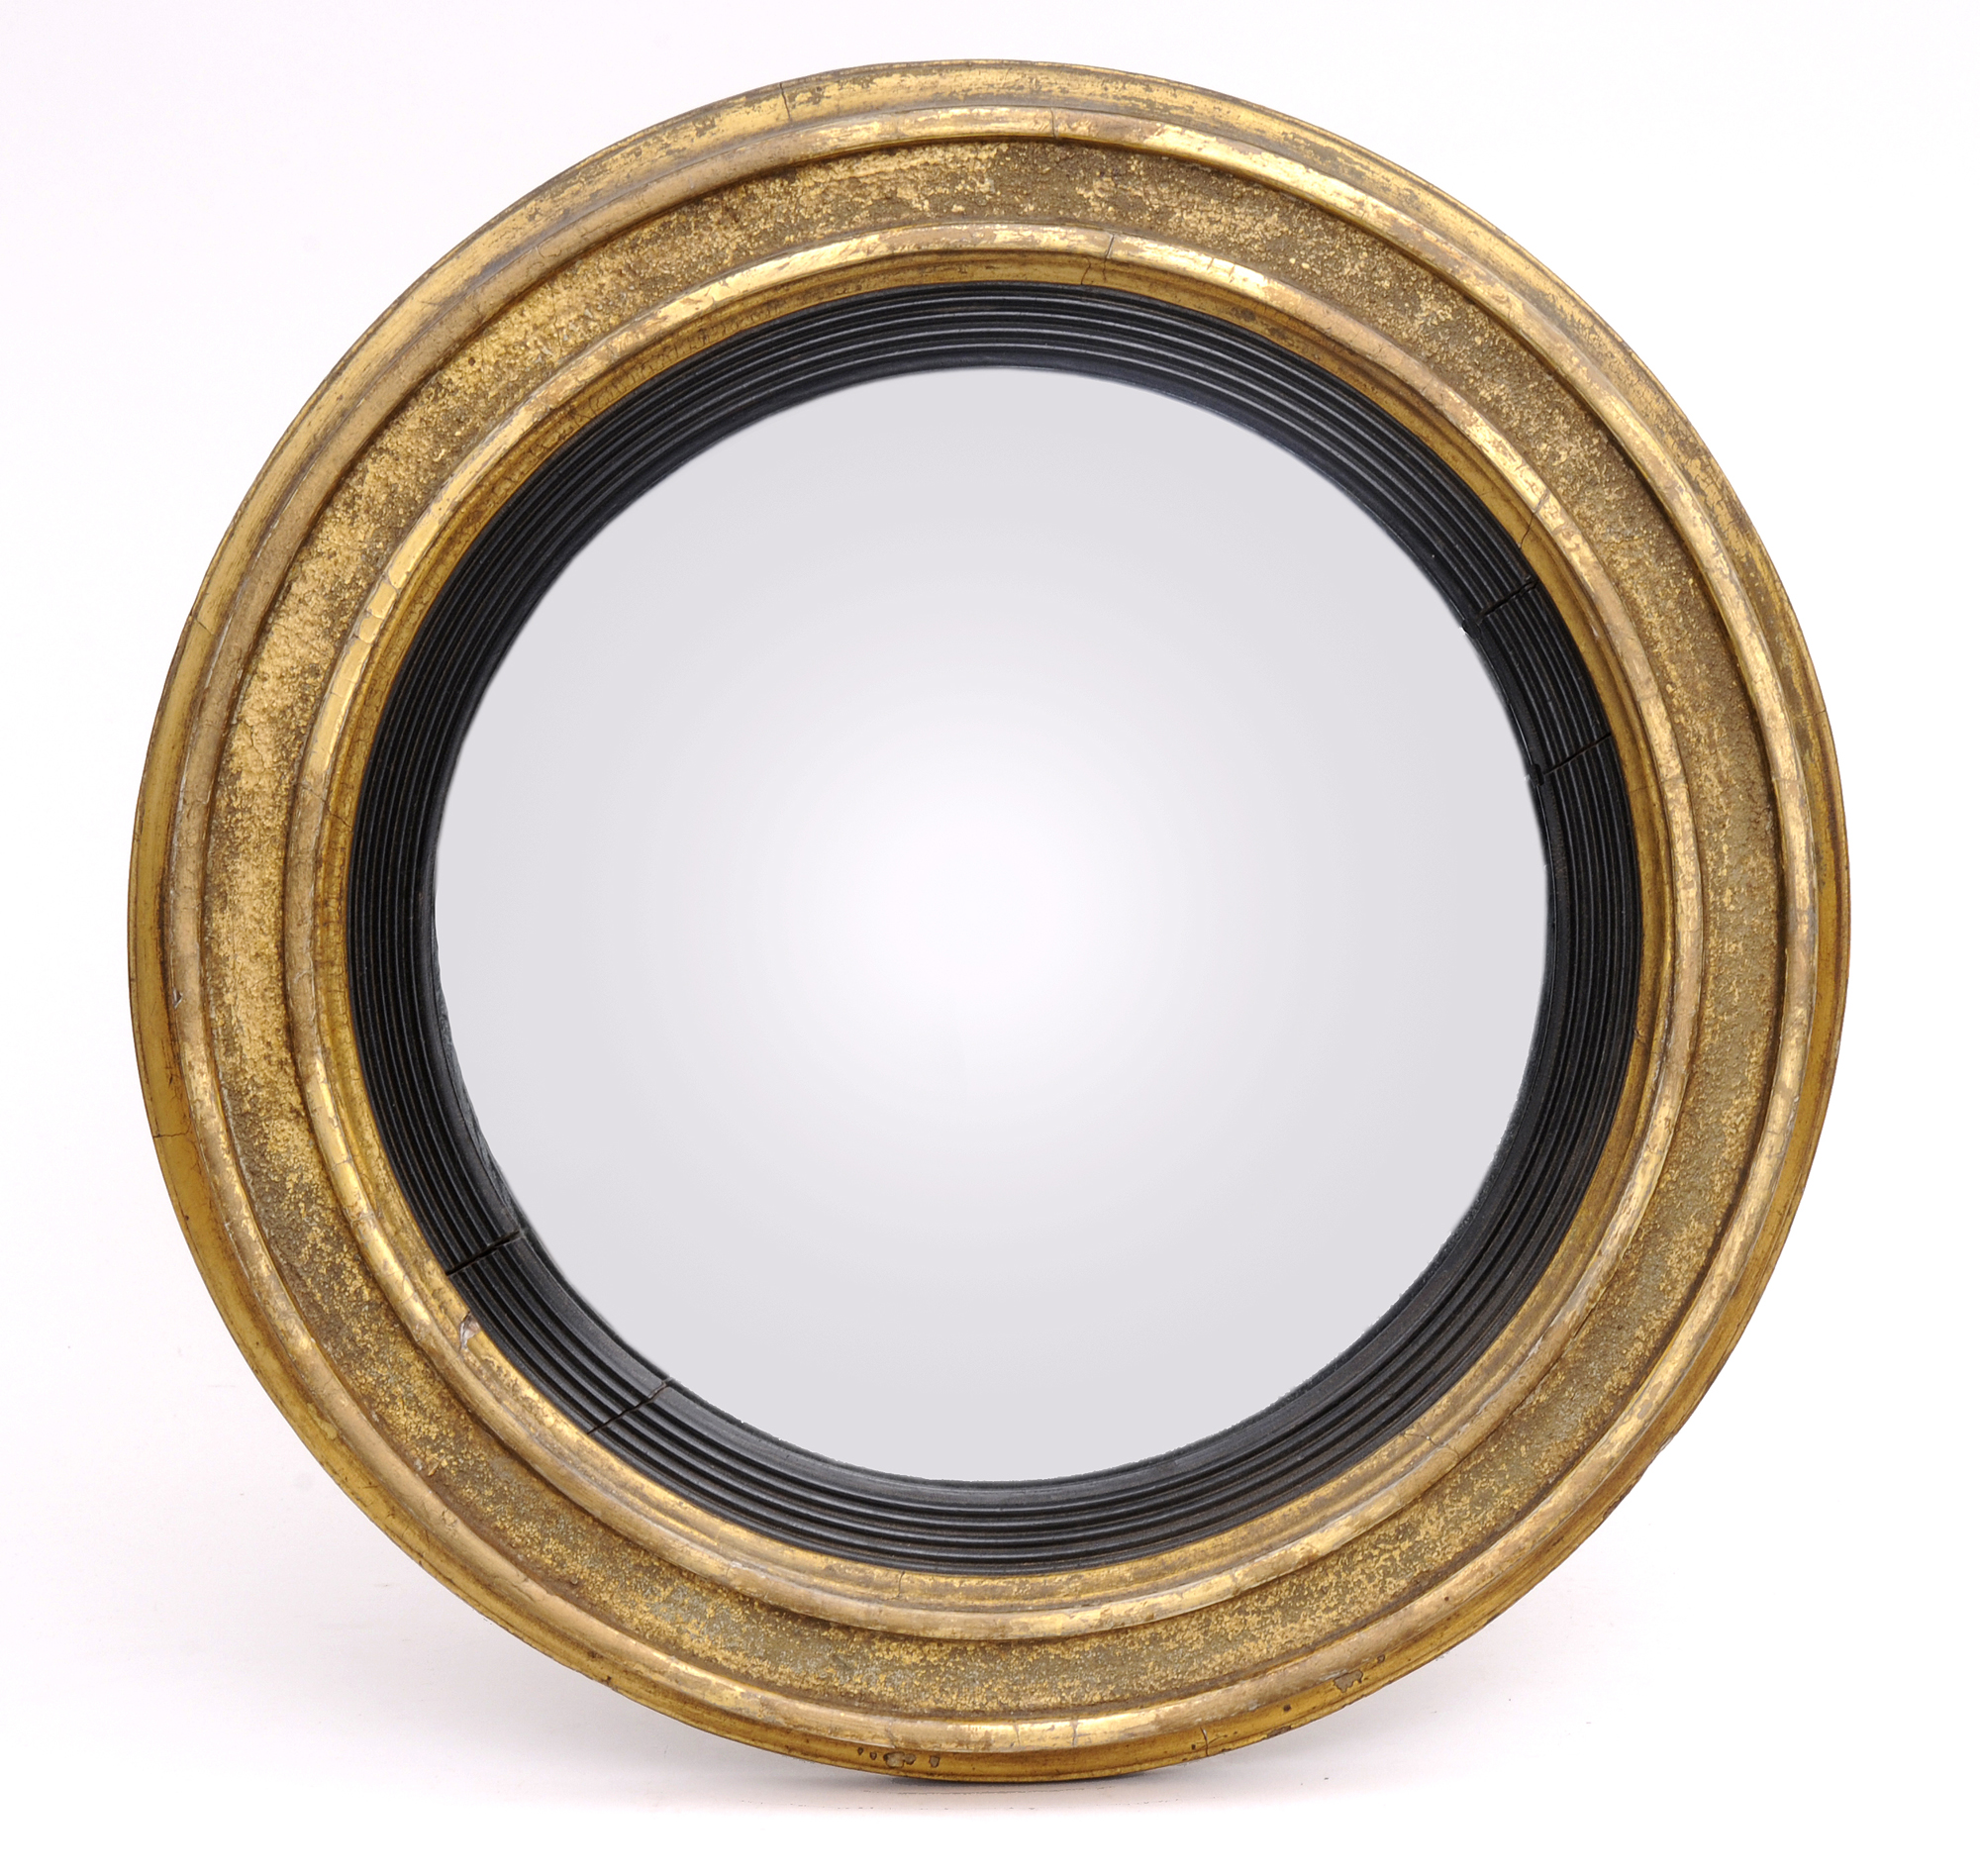 English georgian antique convex mirror antique mirrors for Convex mirror